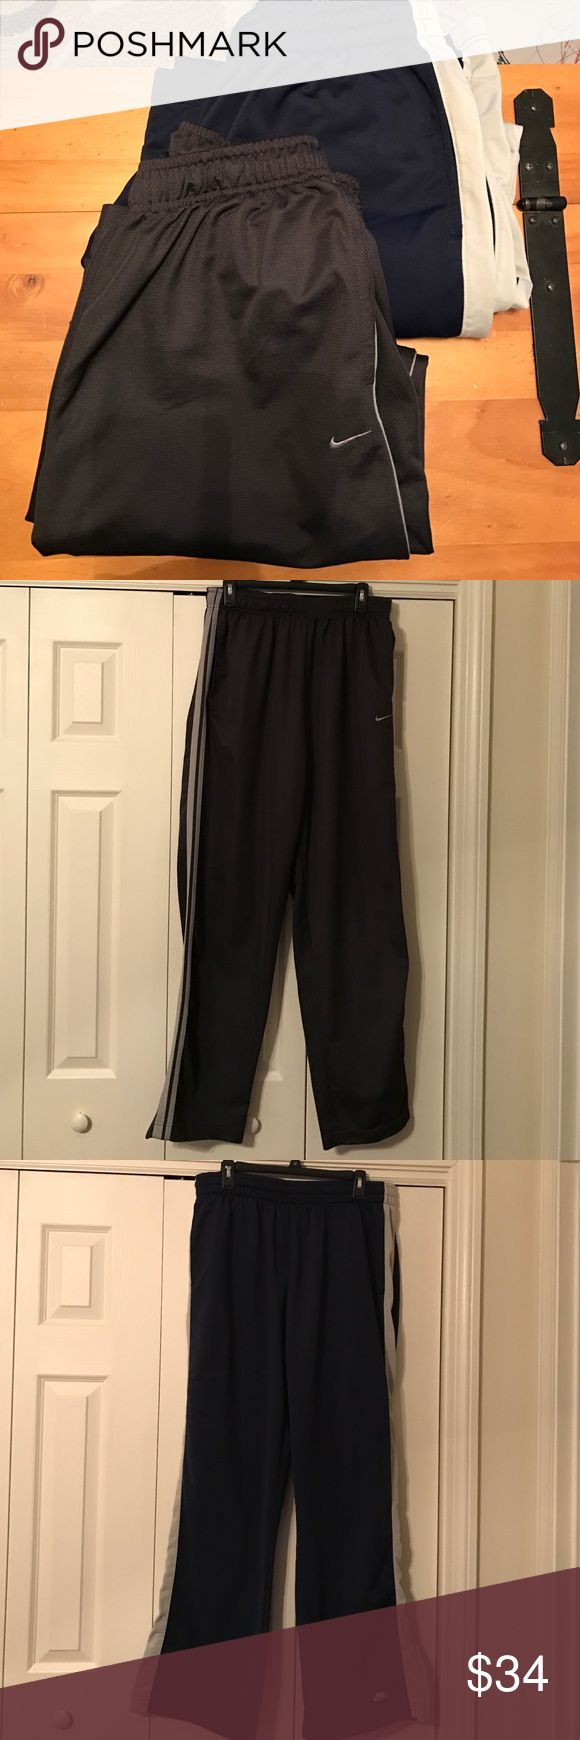 Nike Men's blue/gray athletic pant bundle Nike Men's athletic pant bundle includes: 1 dark gray with light gray stripe and 1 navy blue with gray stripe. Both are XXL and have zipper on bottom of each leg. Both have some slight pilling but otherwise in great condition. Nike Pants Sweatpants & Joggers